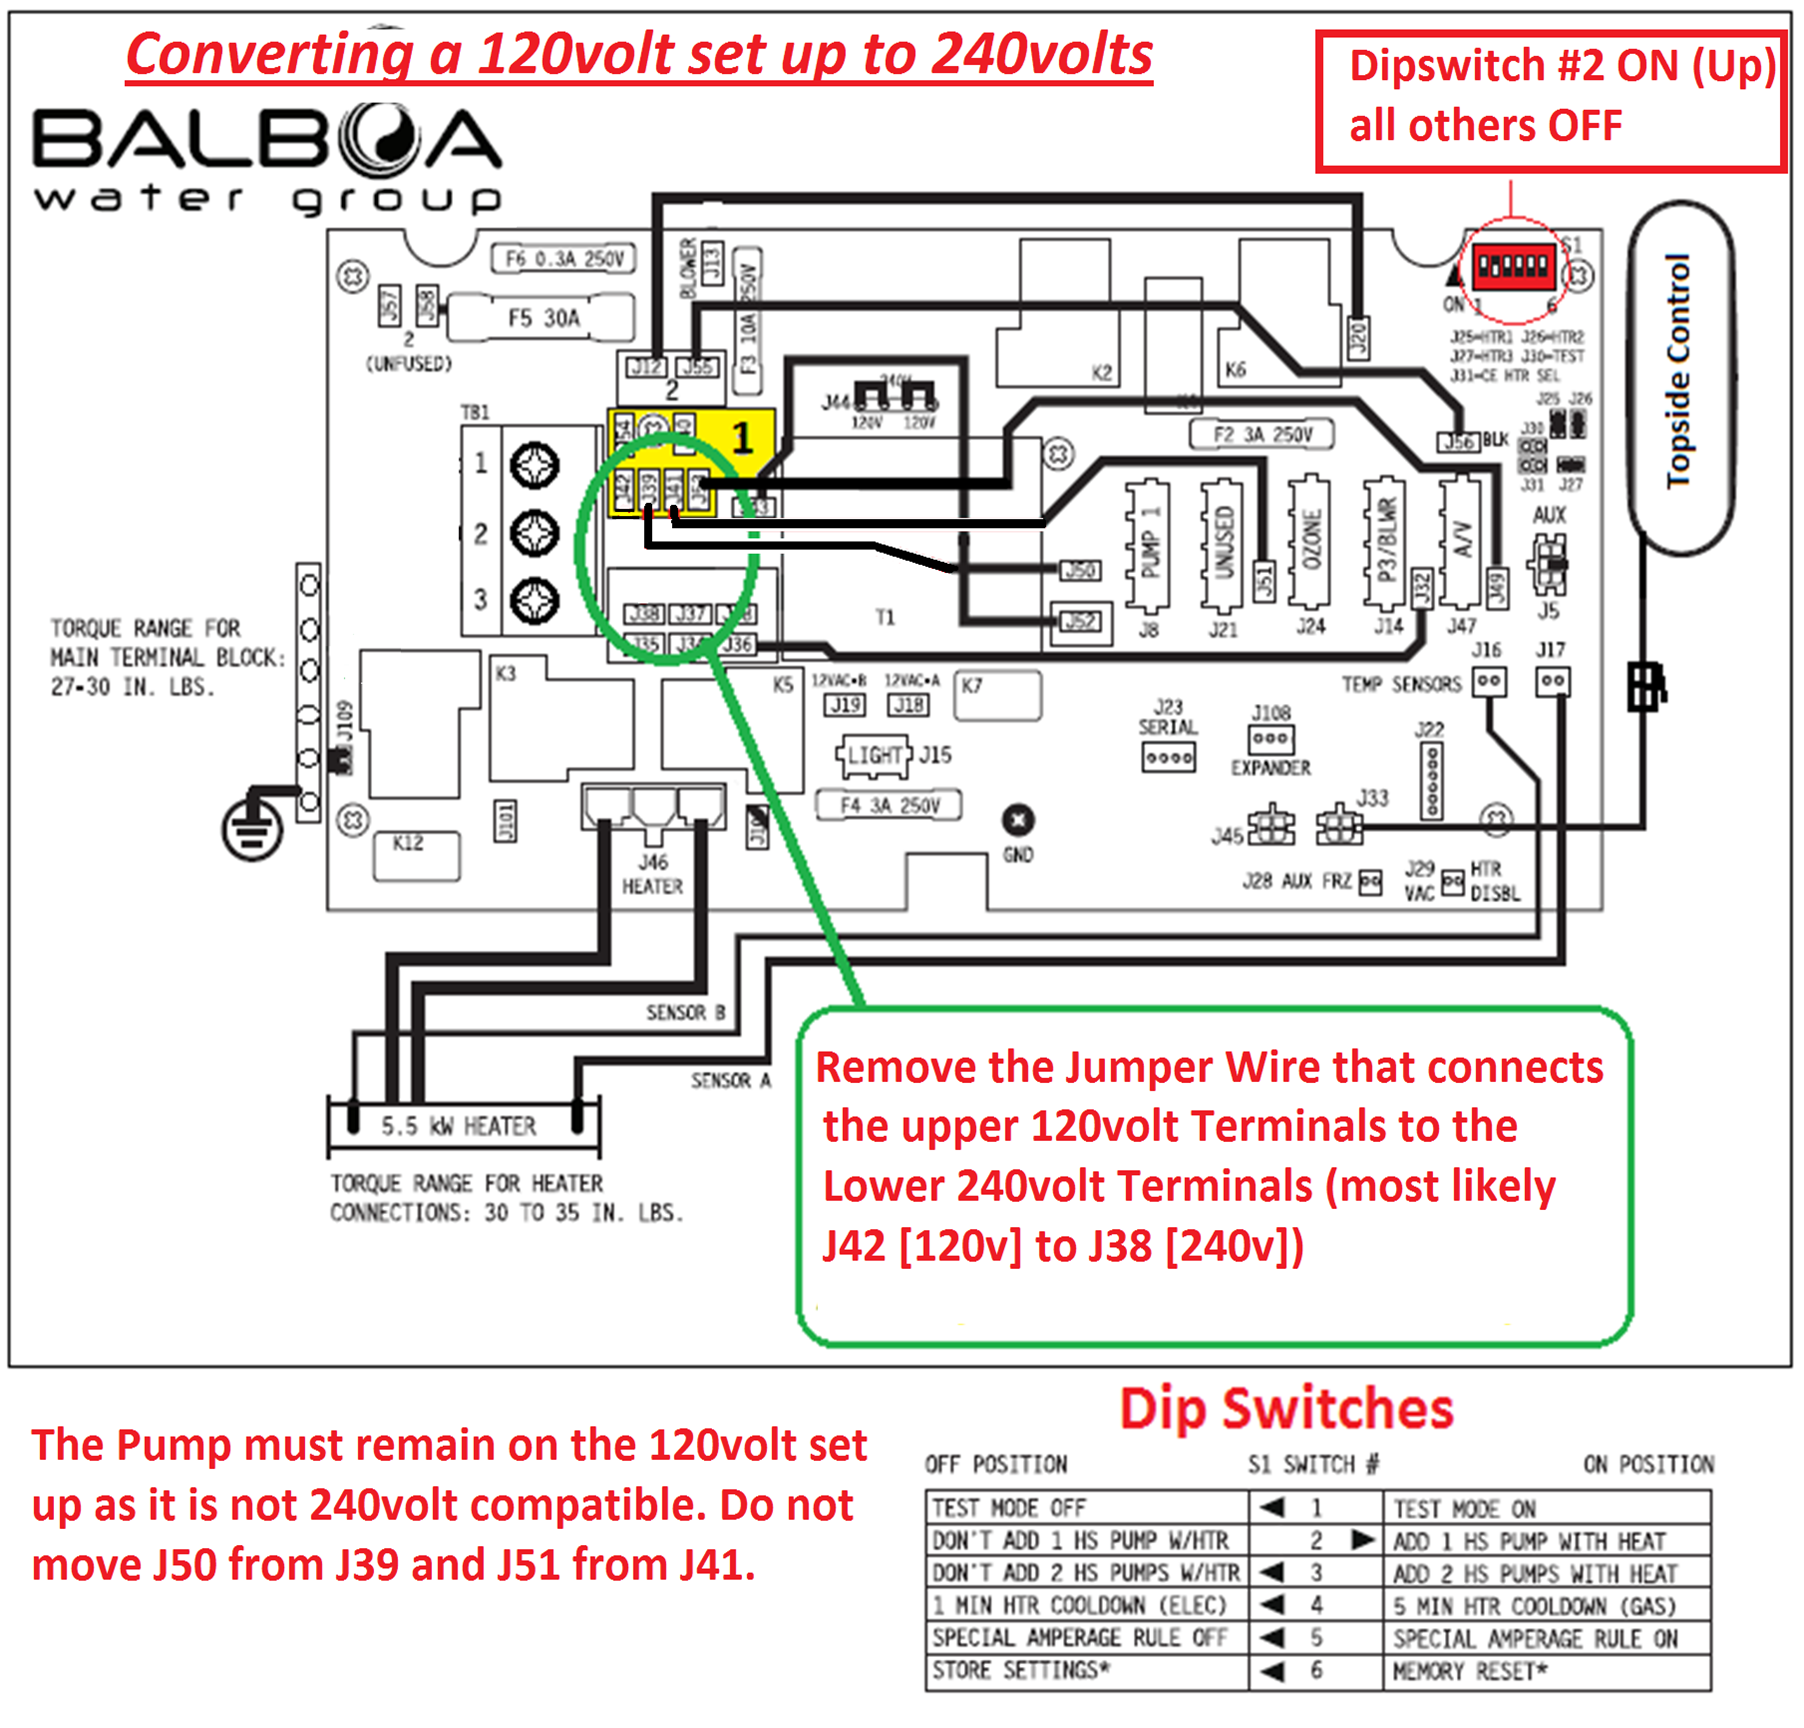 blob1461334674343?1461334695 electrical installation converting a 120v balboa bp to 240v balboa spa wiring diagram at love-stories.co